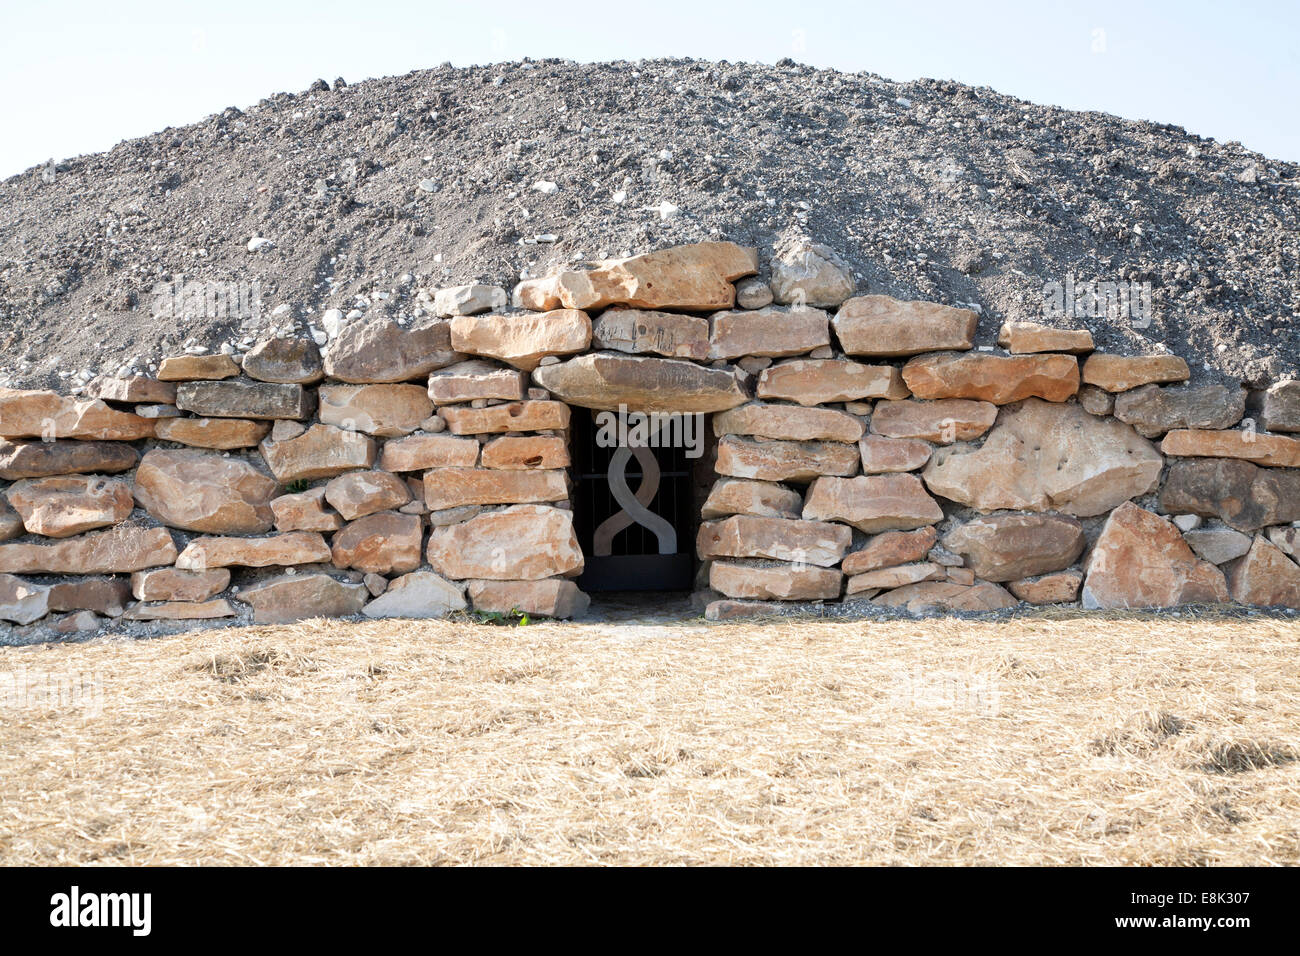 Modern-day neolithic style long Barrow burial chamber for storing cremation urns All Cannings, near Devizes, Wiltshire, - Stock Image